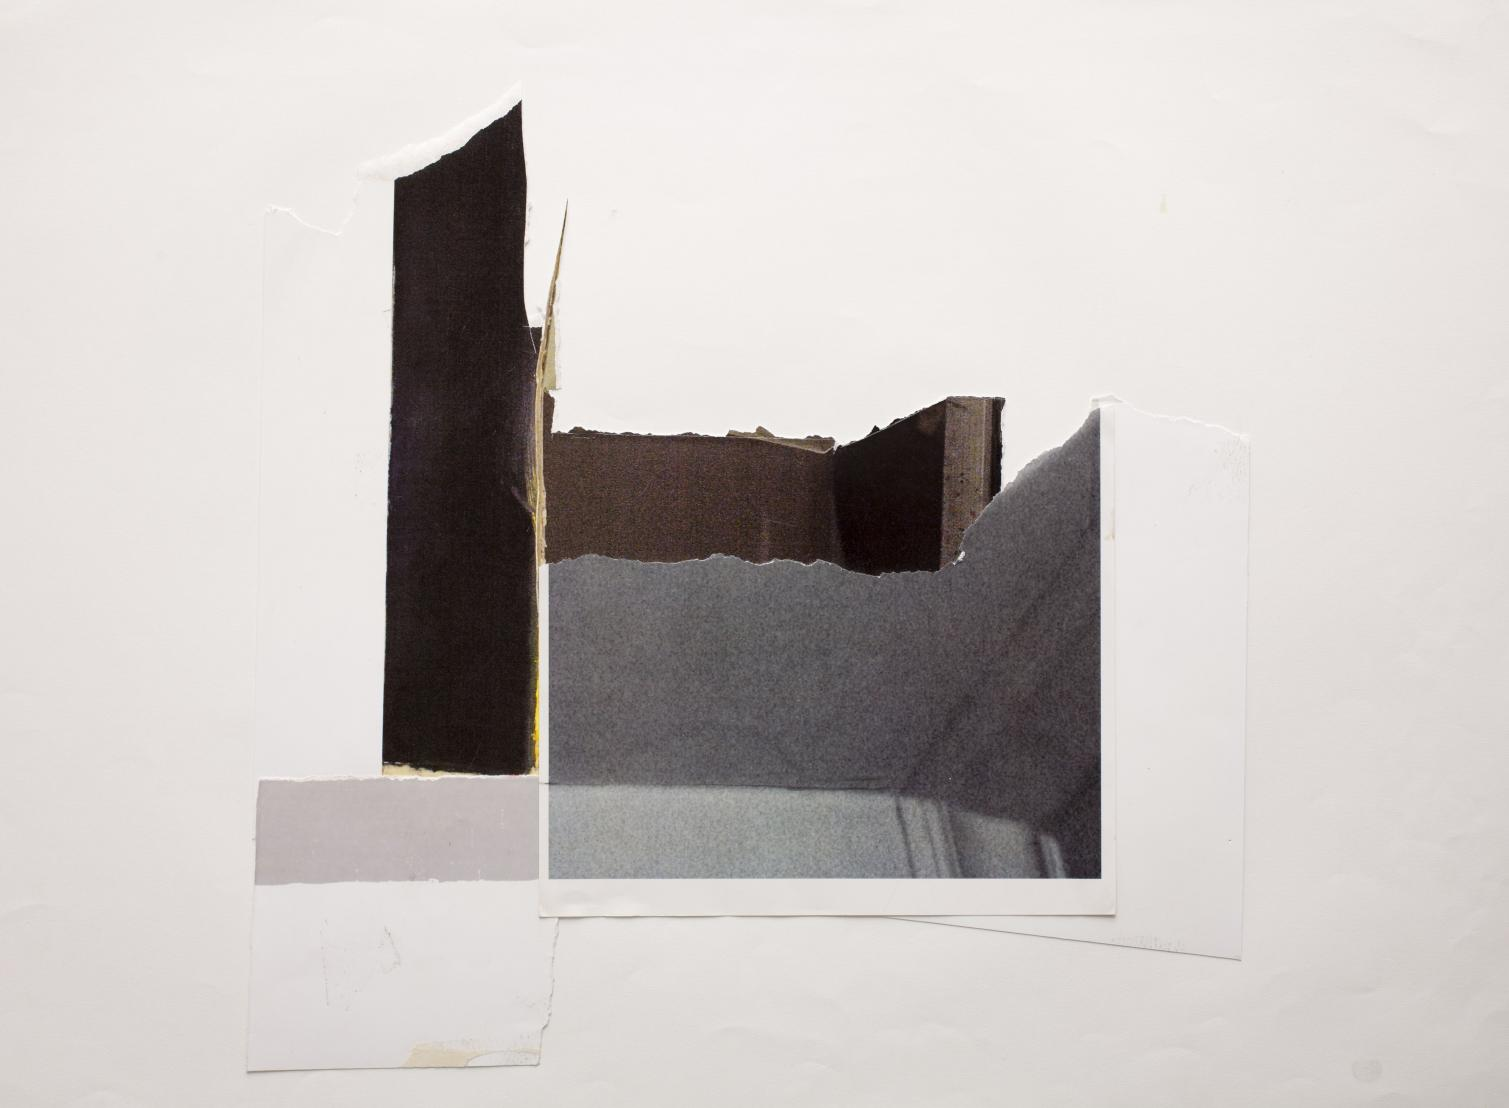 Diana Sirianni, Untitled 2 Inkjet and laser print 42 x 58.7 cm, 2008